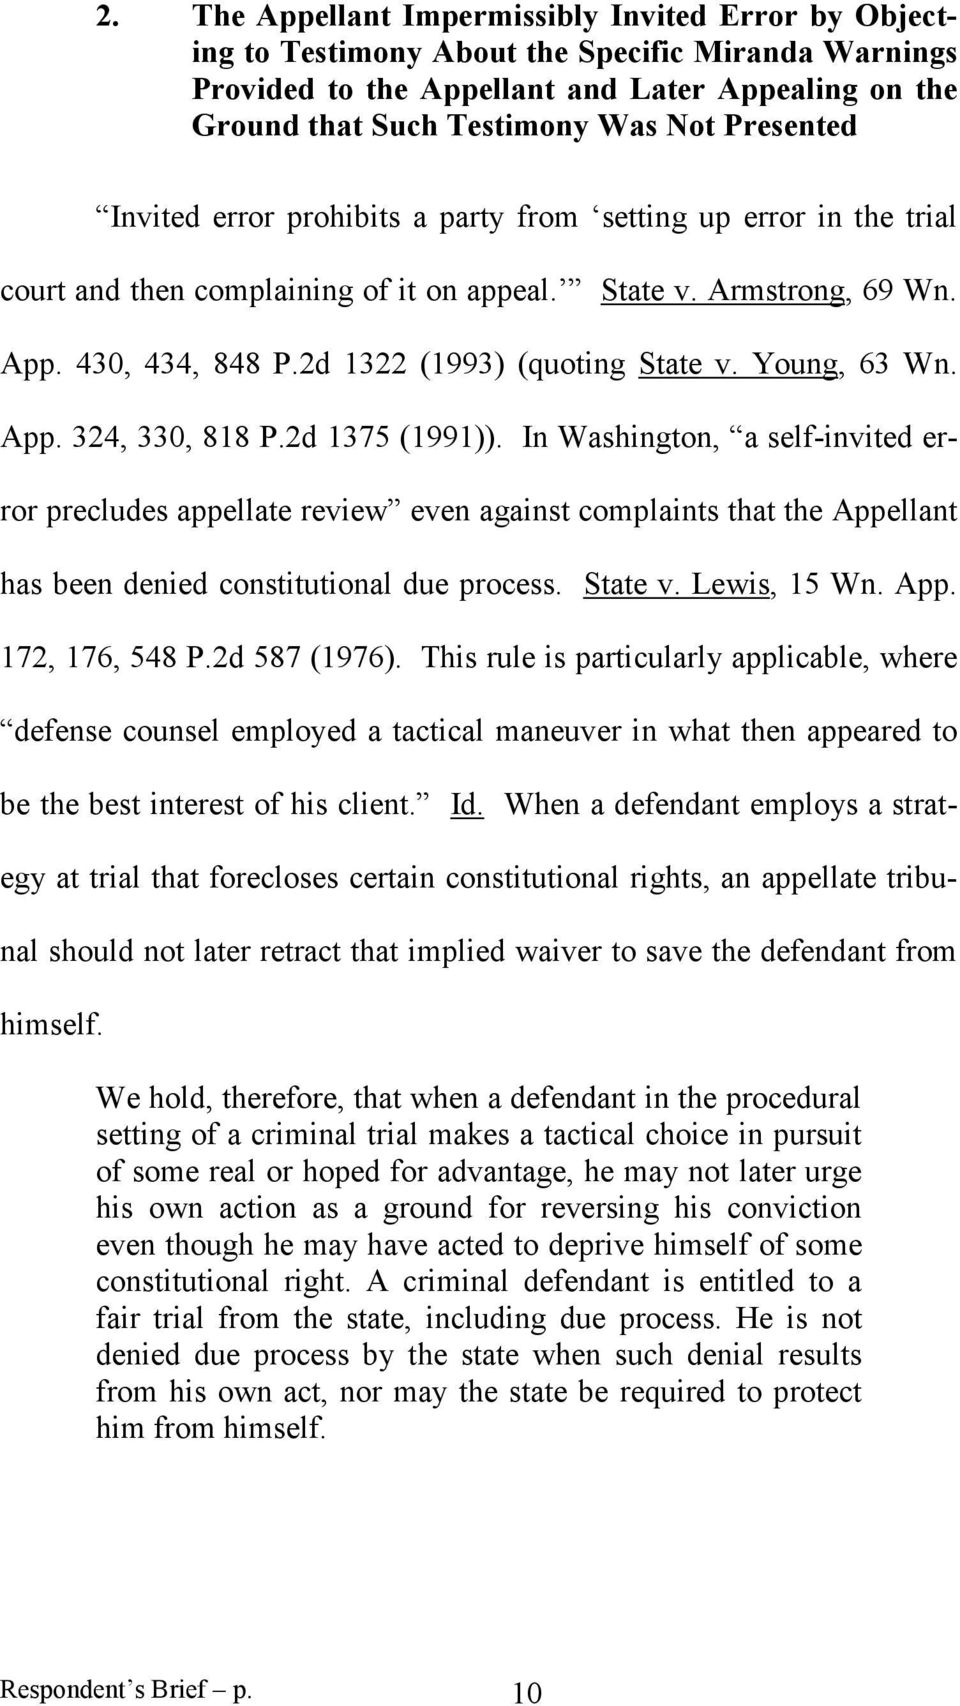 2d 1322 (1993) (quoting State v. Young, 63 Wn. App. 324, 330, 818 P.2d 1375 (1991)).